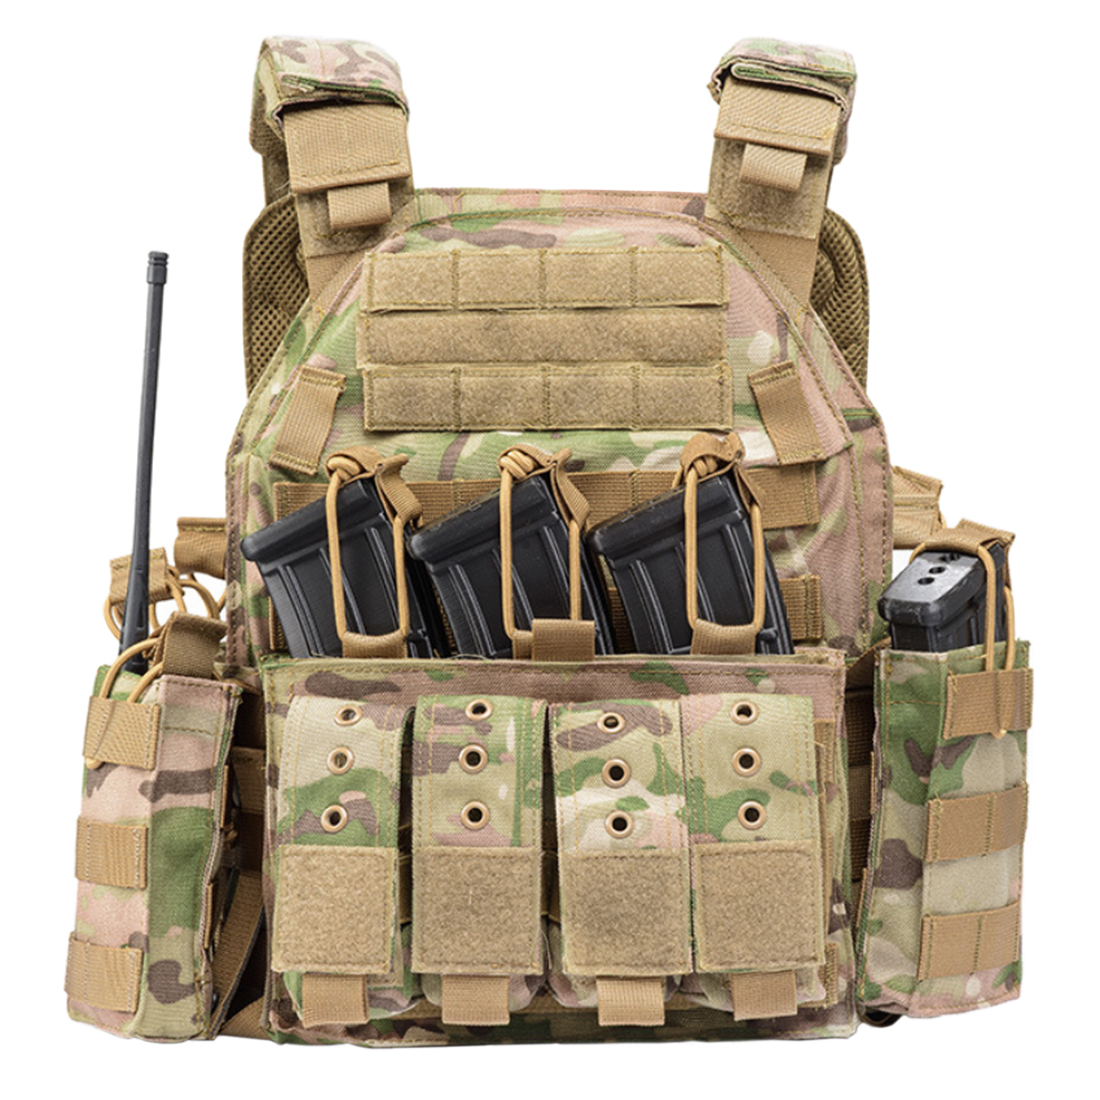 Security Tactical Vest Outdoor Hunting Protective Adjustable  1000D Nylon Plate Carrier Vest For Men Airsoft Combat Accessories